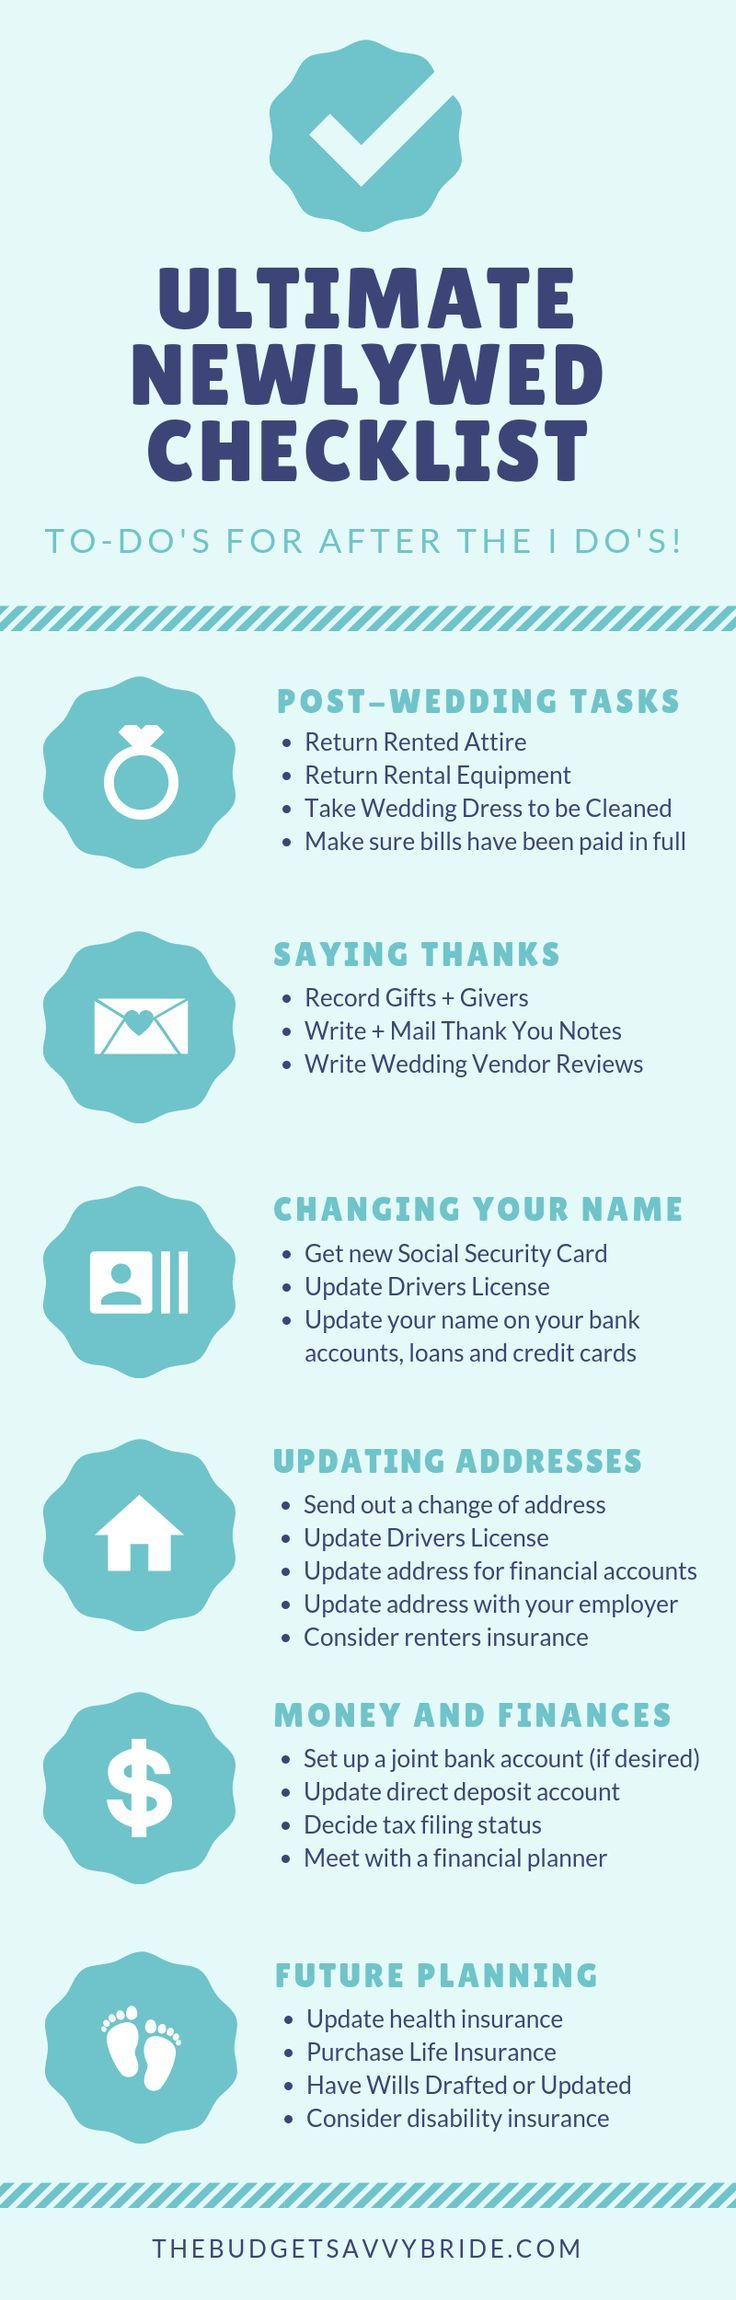 The Ultimate Newlywed Checklist With Images Newlyweds Wedding Checklist Budget Wedding Planning Advice